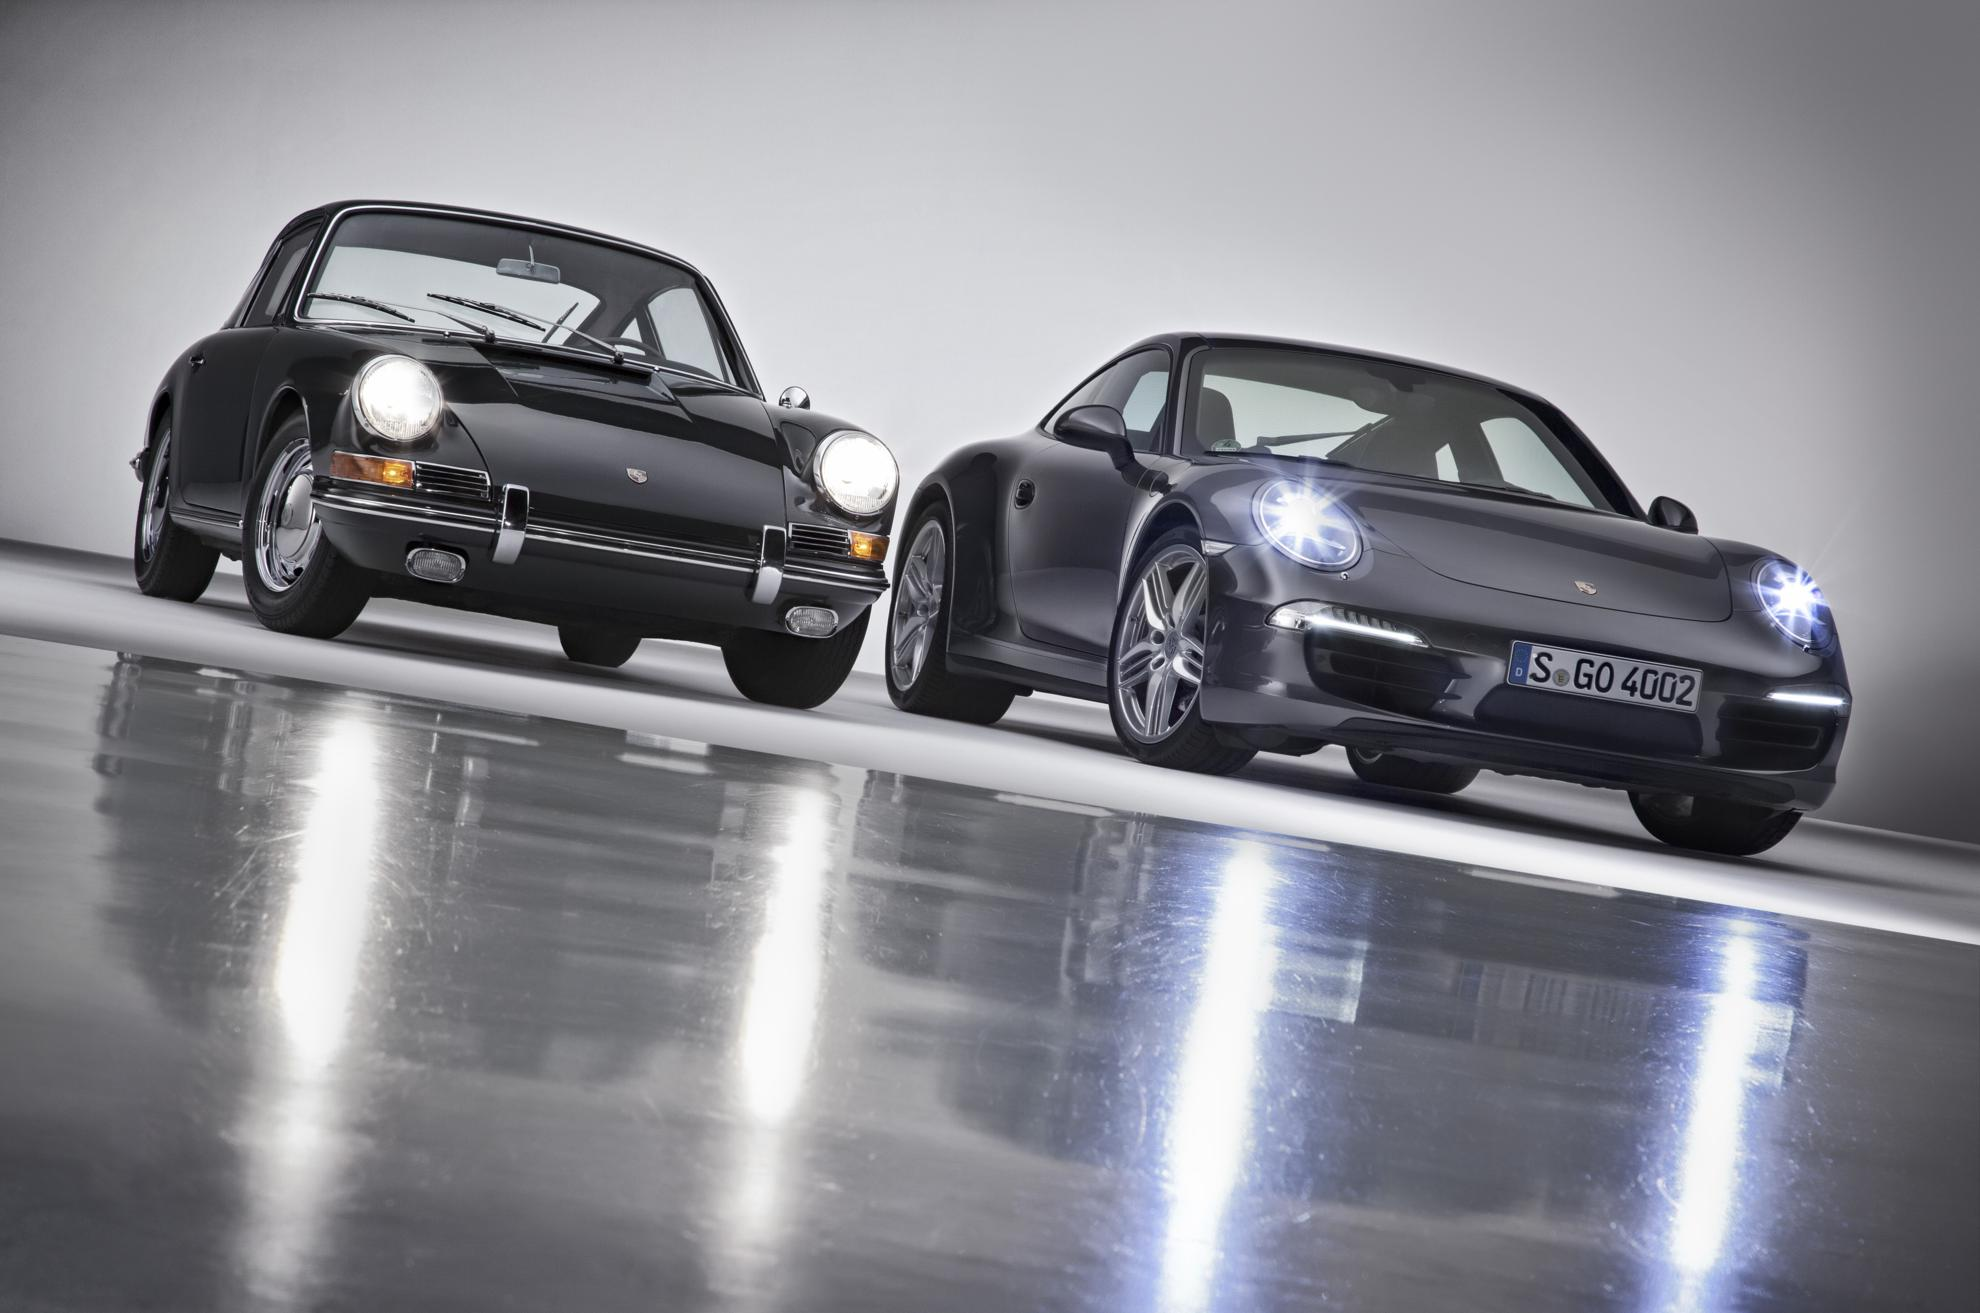 Porsche celebrates 50 Years of 911 at Goodwood Festival of Speed